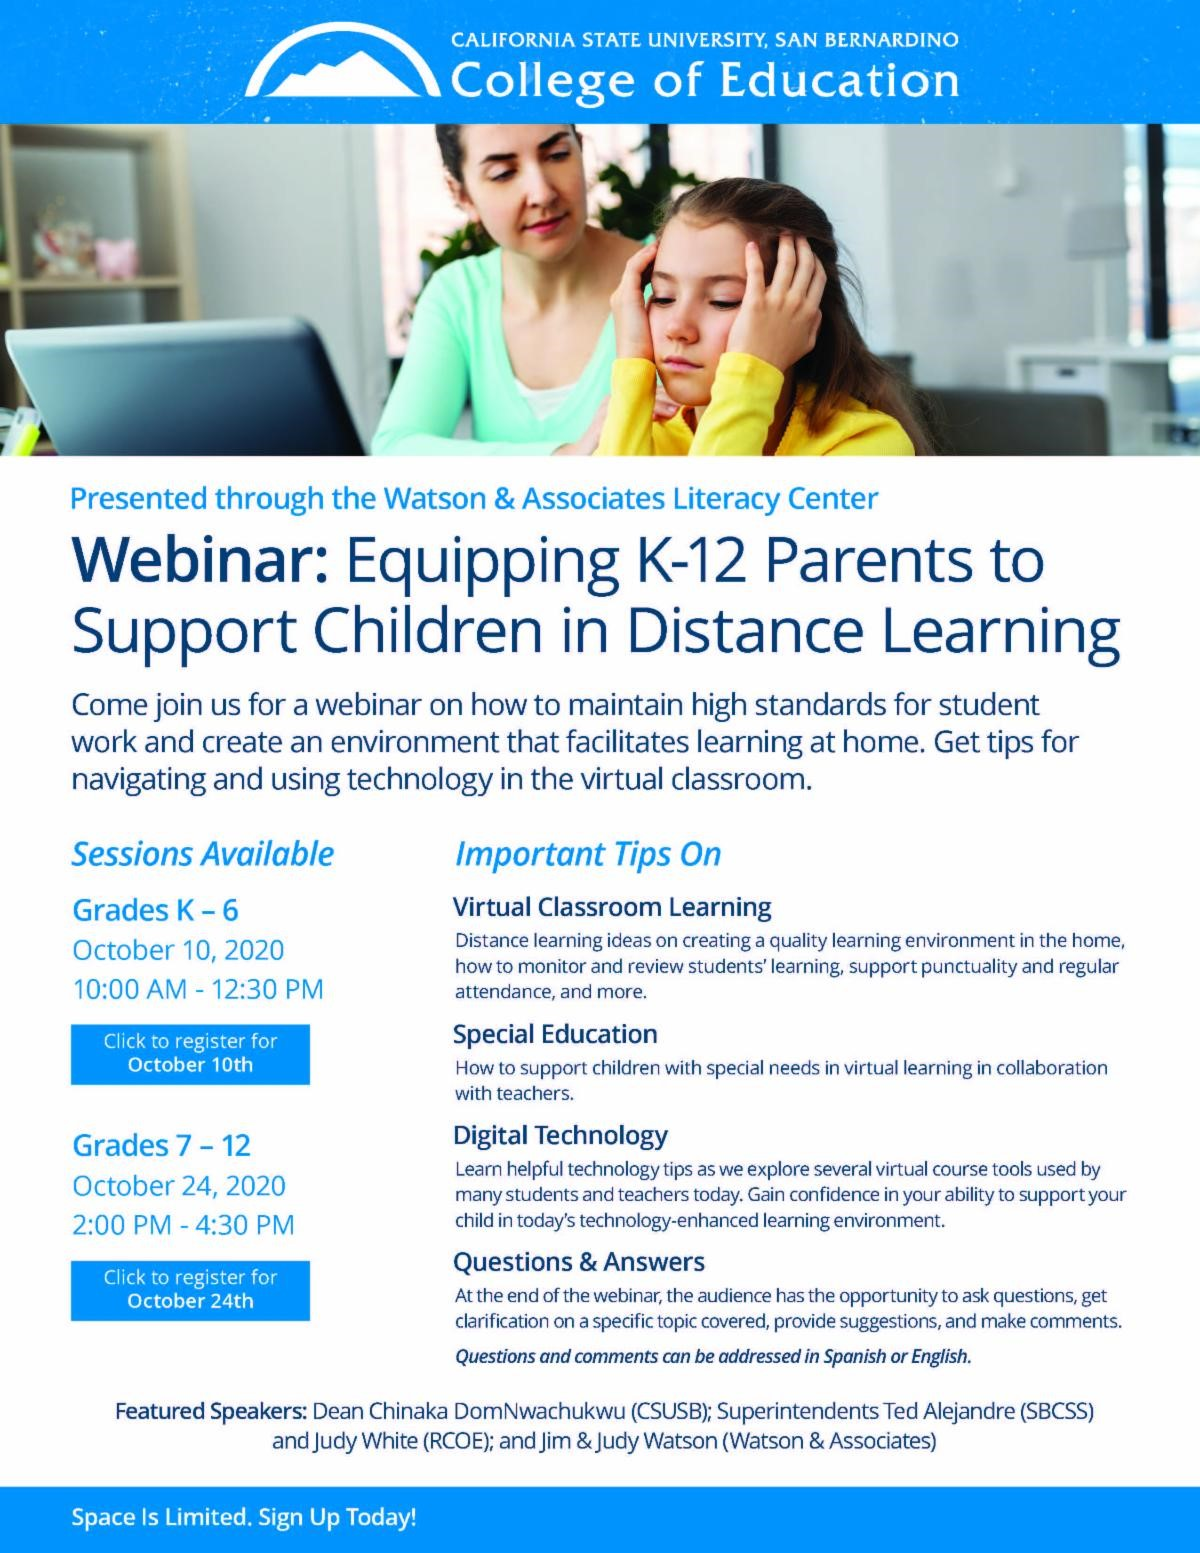 Equipping K-12 Parents to Support Children in Distance Learning (2)